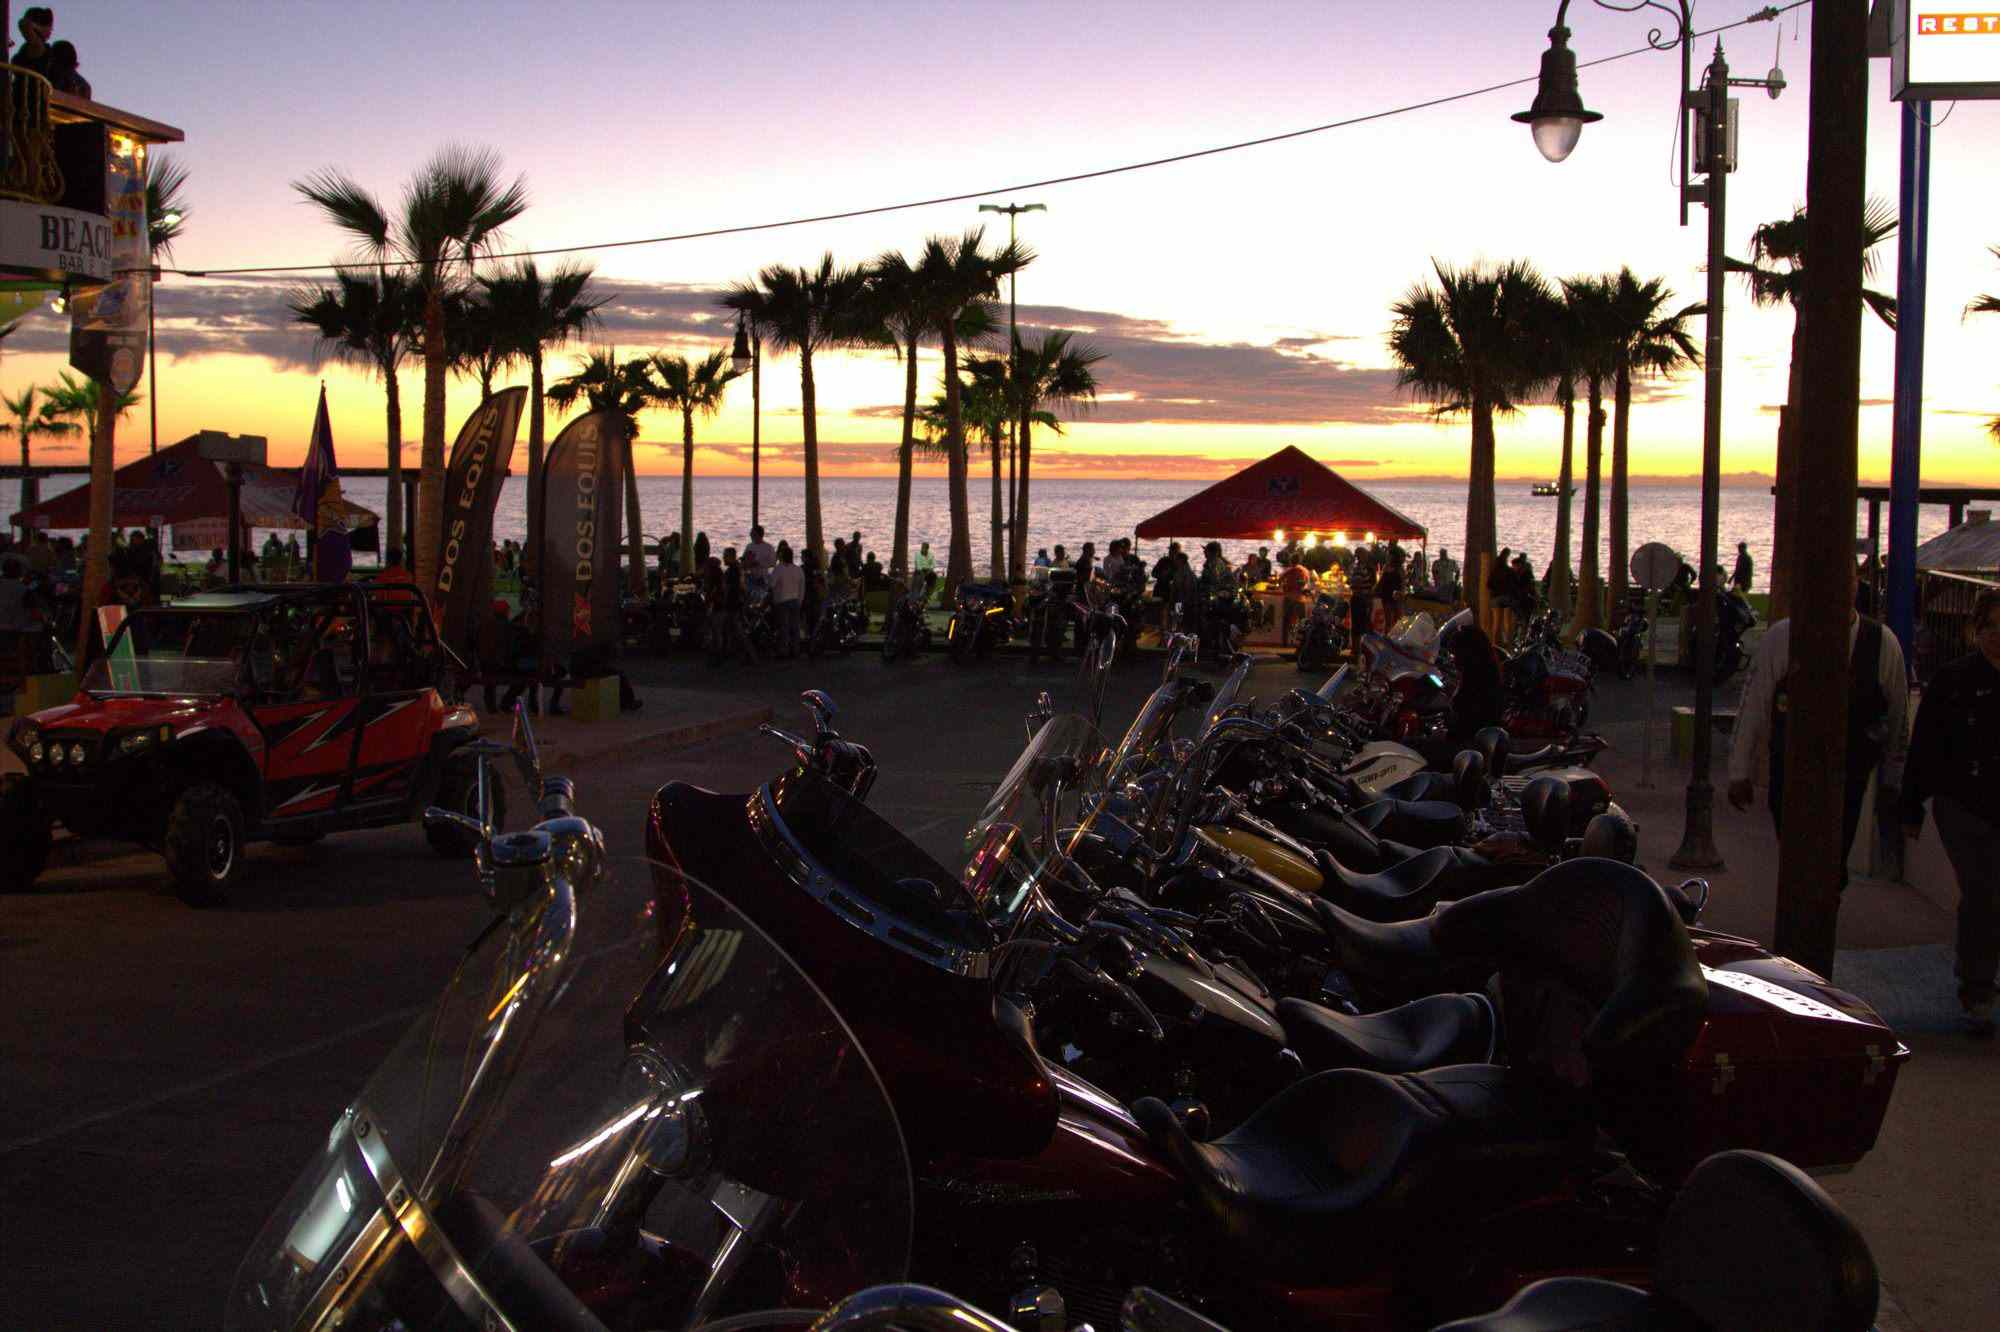 Motorcycles parked at Rocky Point Rally